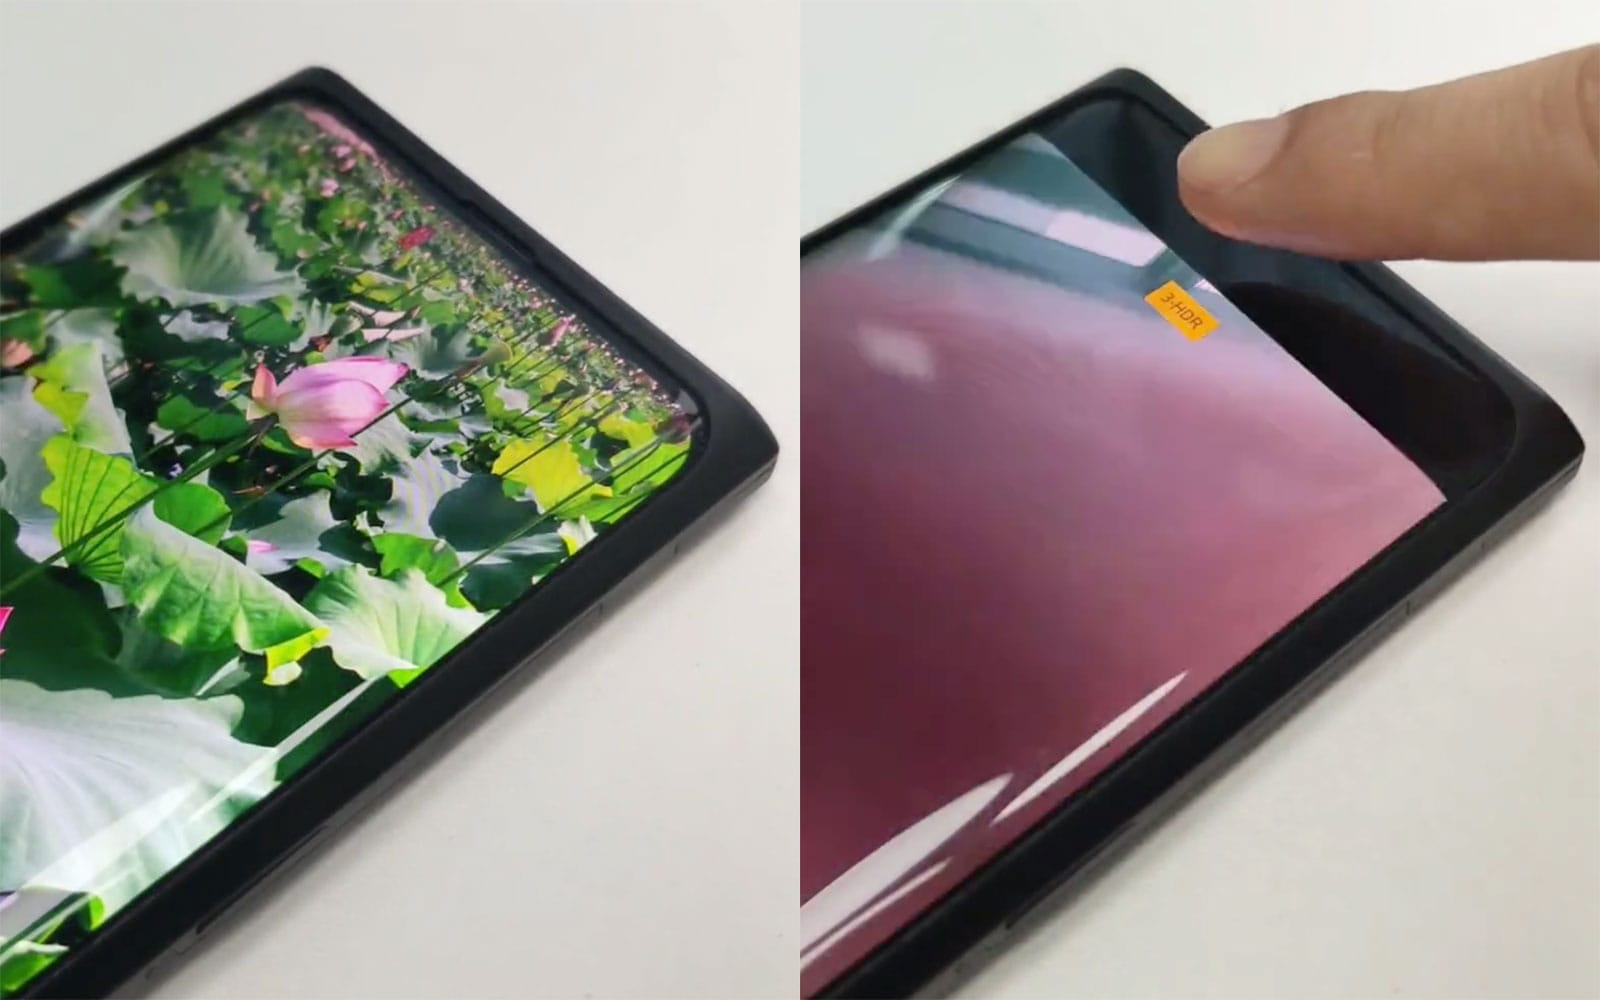 Oppo under-display front camera